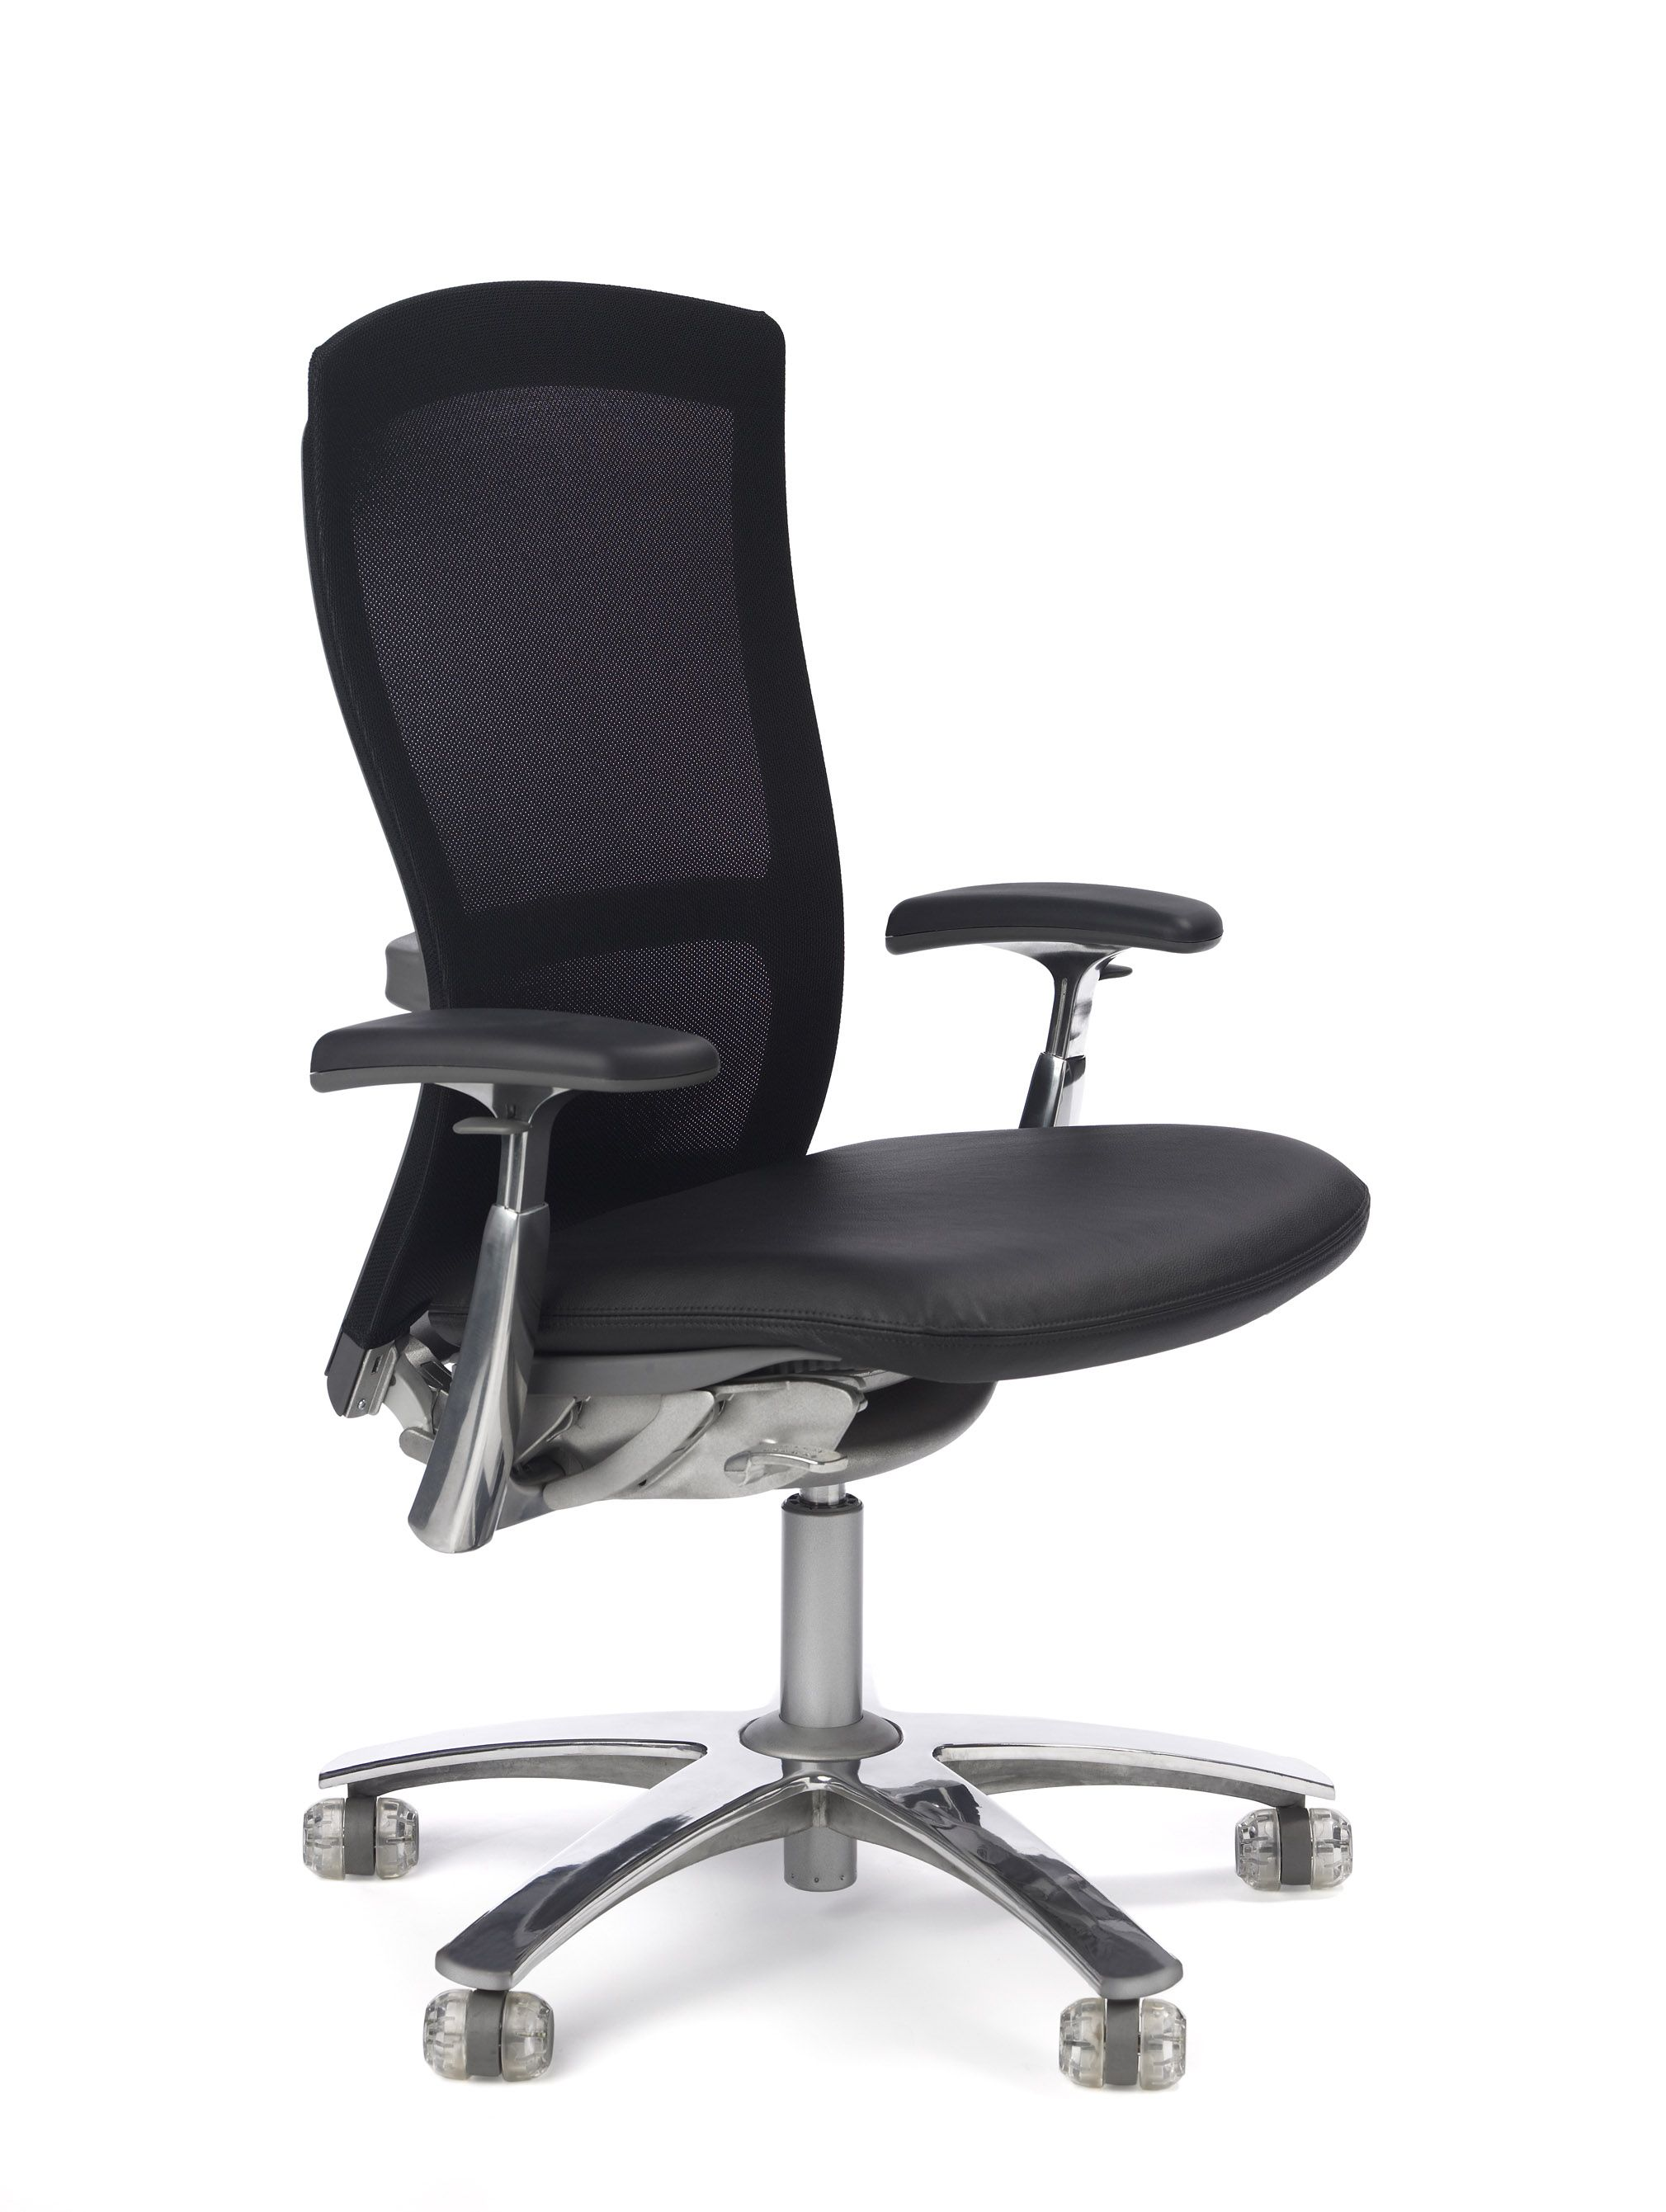 The Life Chair By Formway Design Perfect For Any Office Chair